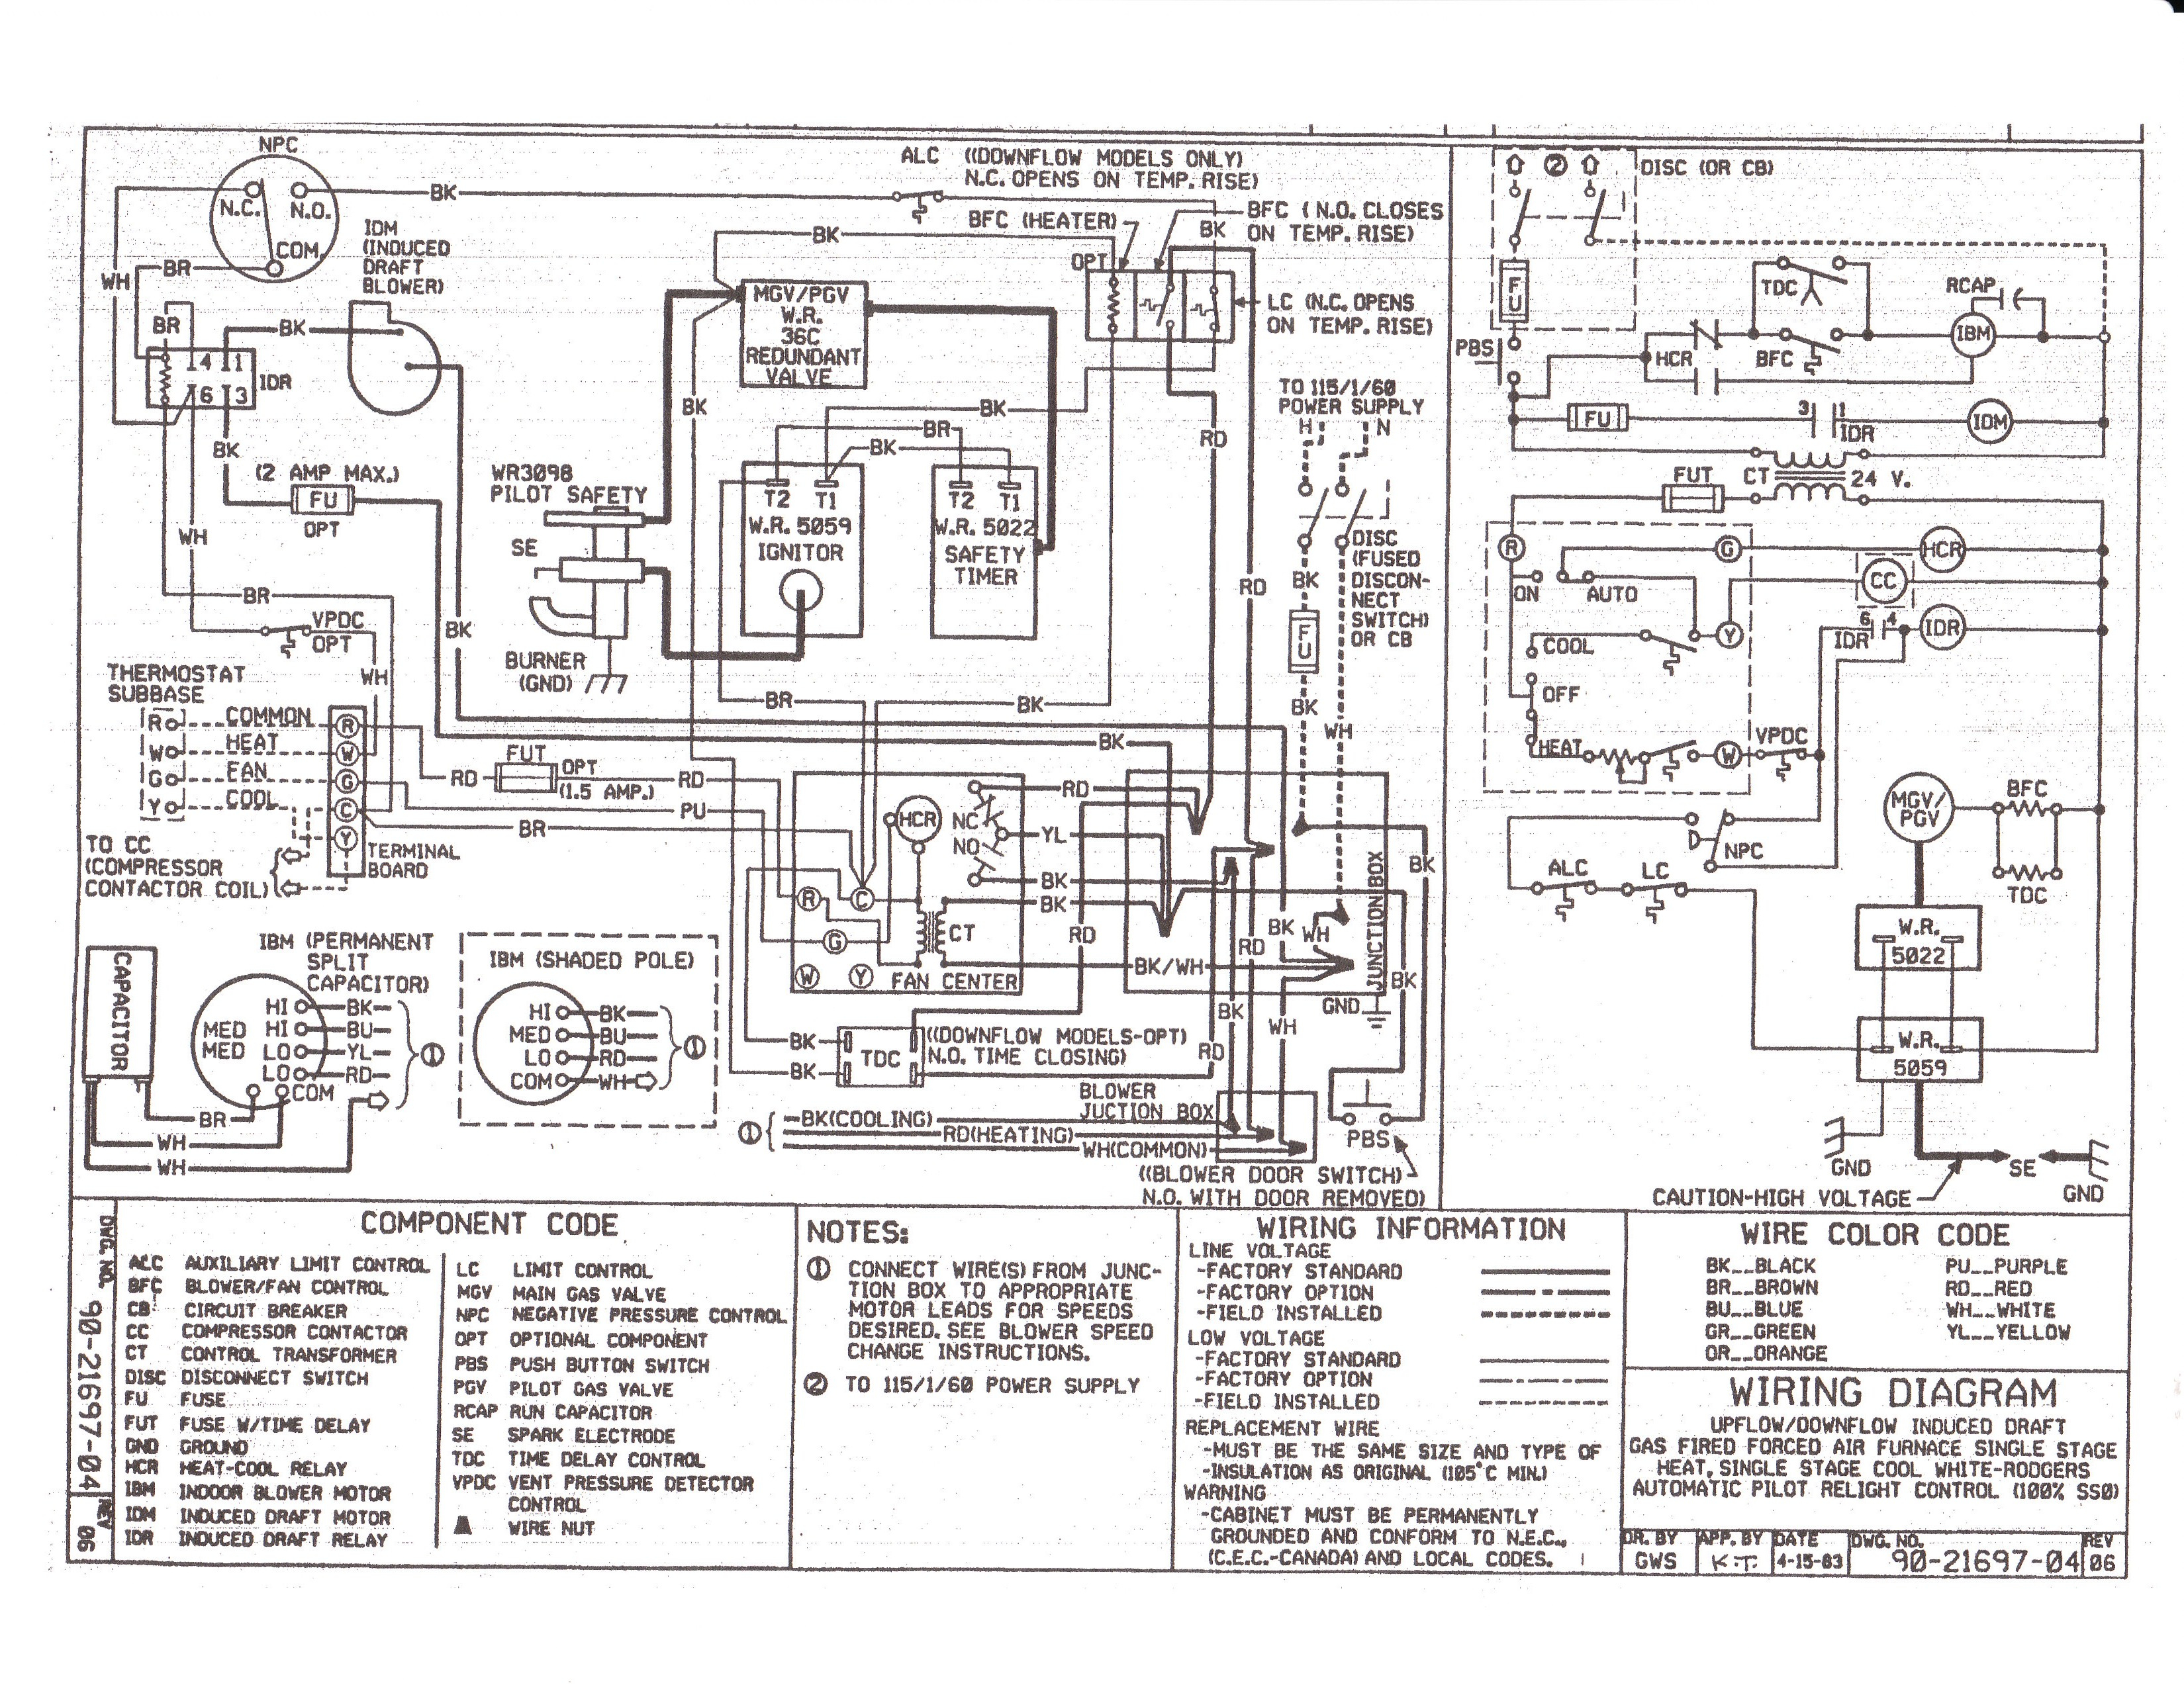 coleman mobile home gas furnace wiring diagram Collection-Lovely Intertherm Electric Furnace Wiring Diagram 62 With Additional Jvc Kd R610 19-f